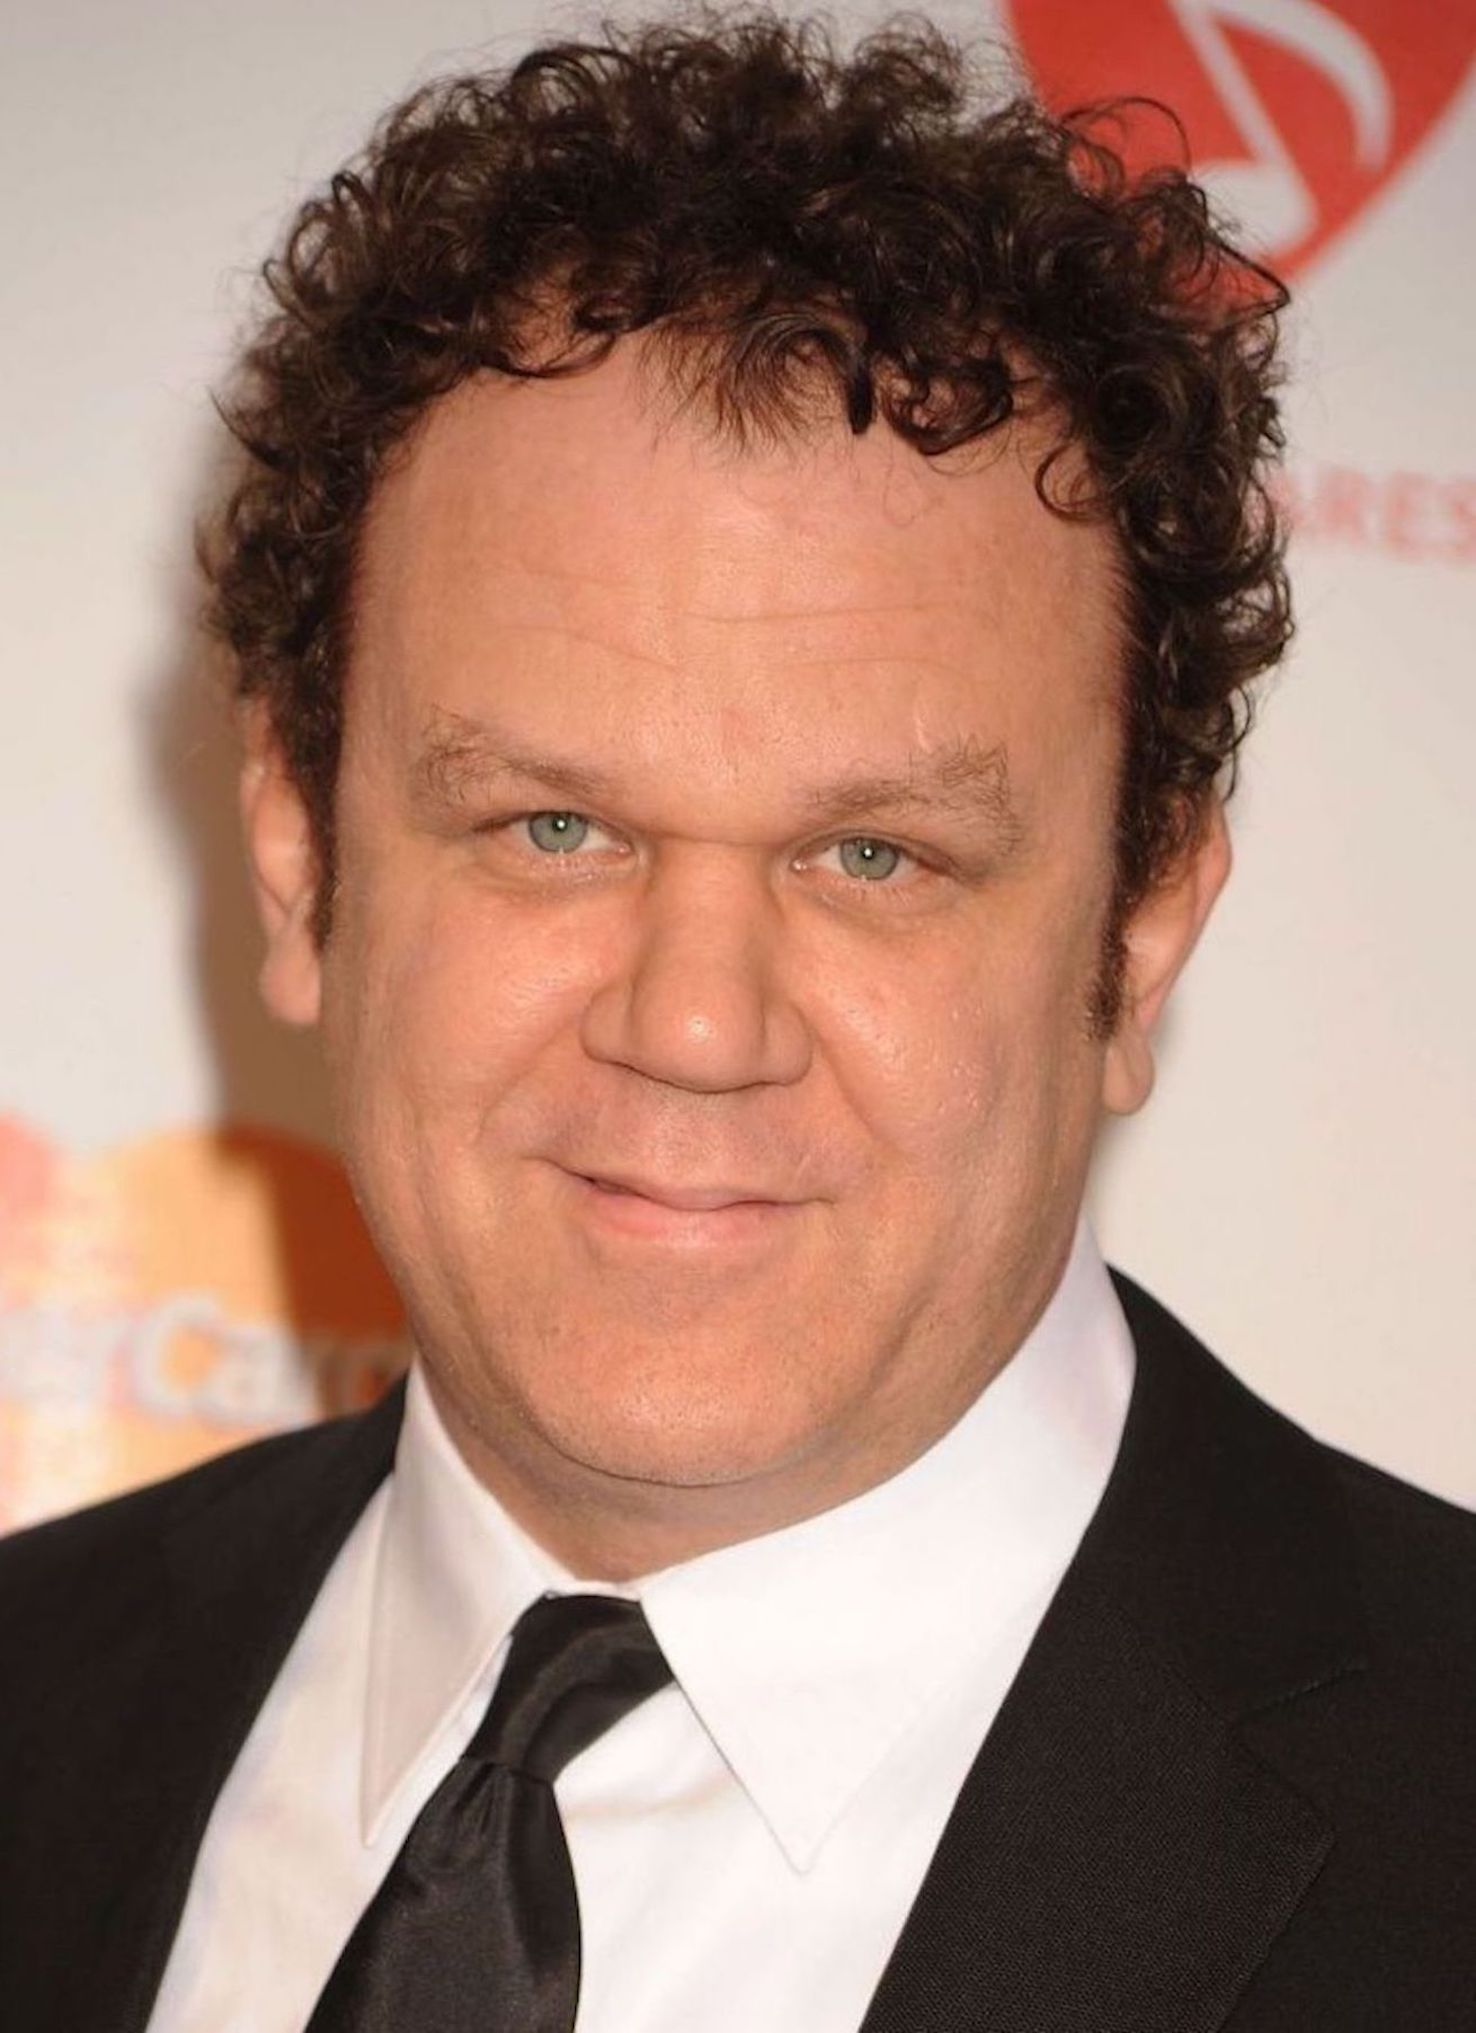 The 52-year old son of father John Reilly, Sr. and mother(?), 187 cm tall John C. Reilly in 2017 photo